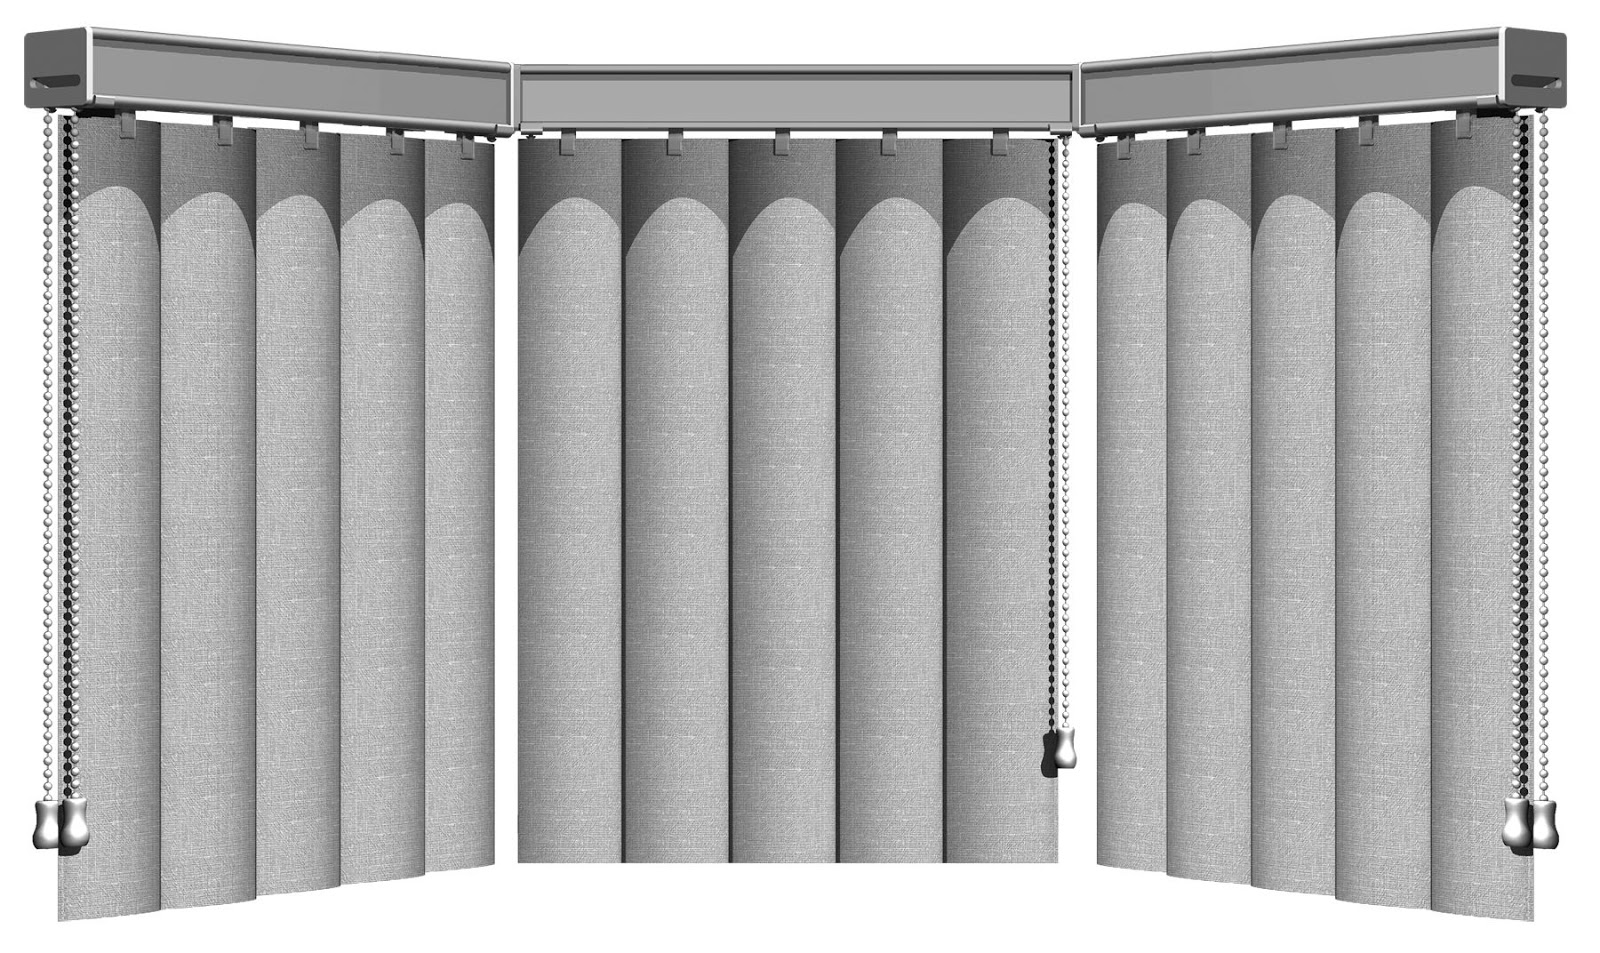 Vertical Blinds James Ross Designs On Maui Hawai I The